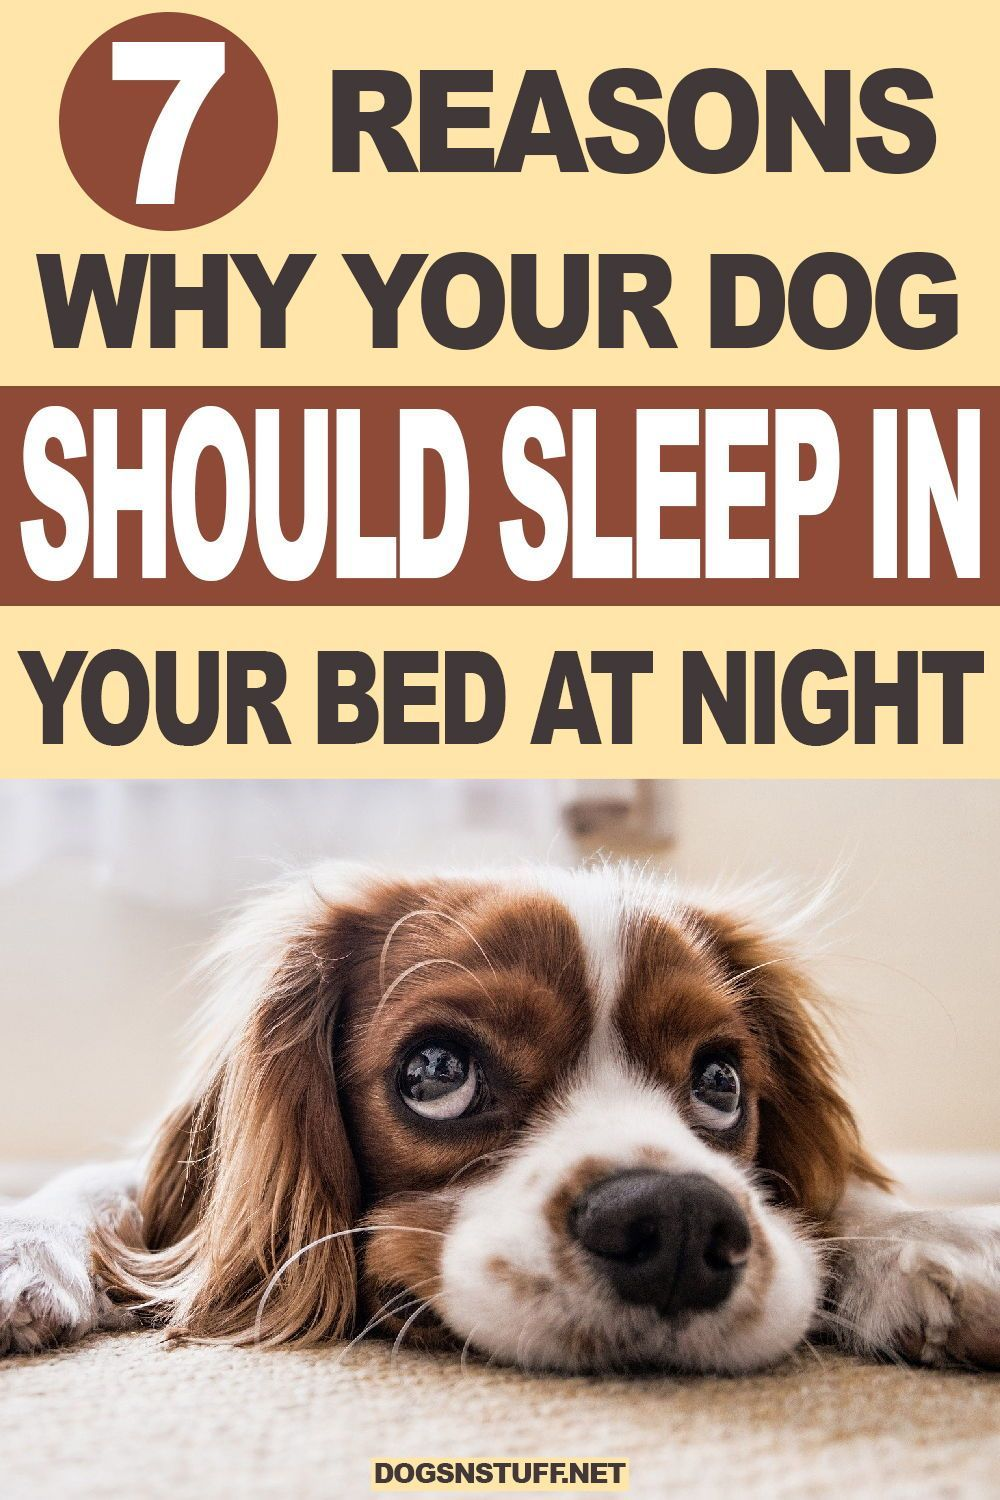 4c8d080559fc662dca2749978776bfea - How Do I Get My Puppy To Sleep In His Bed